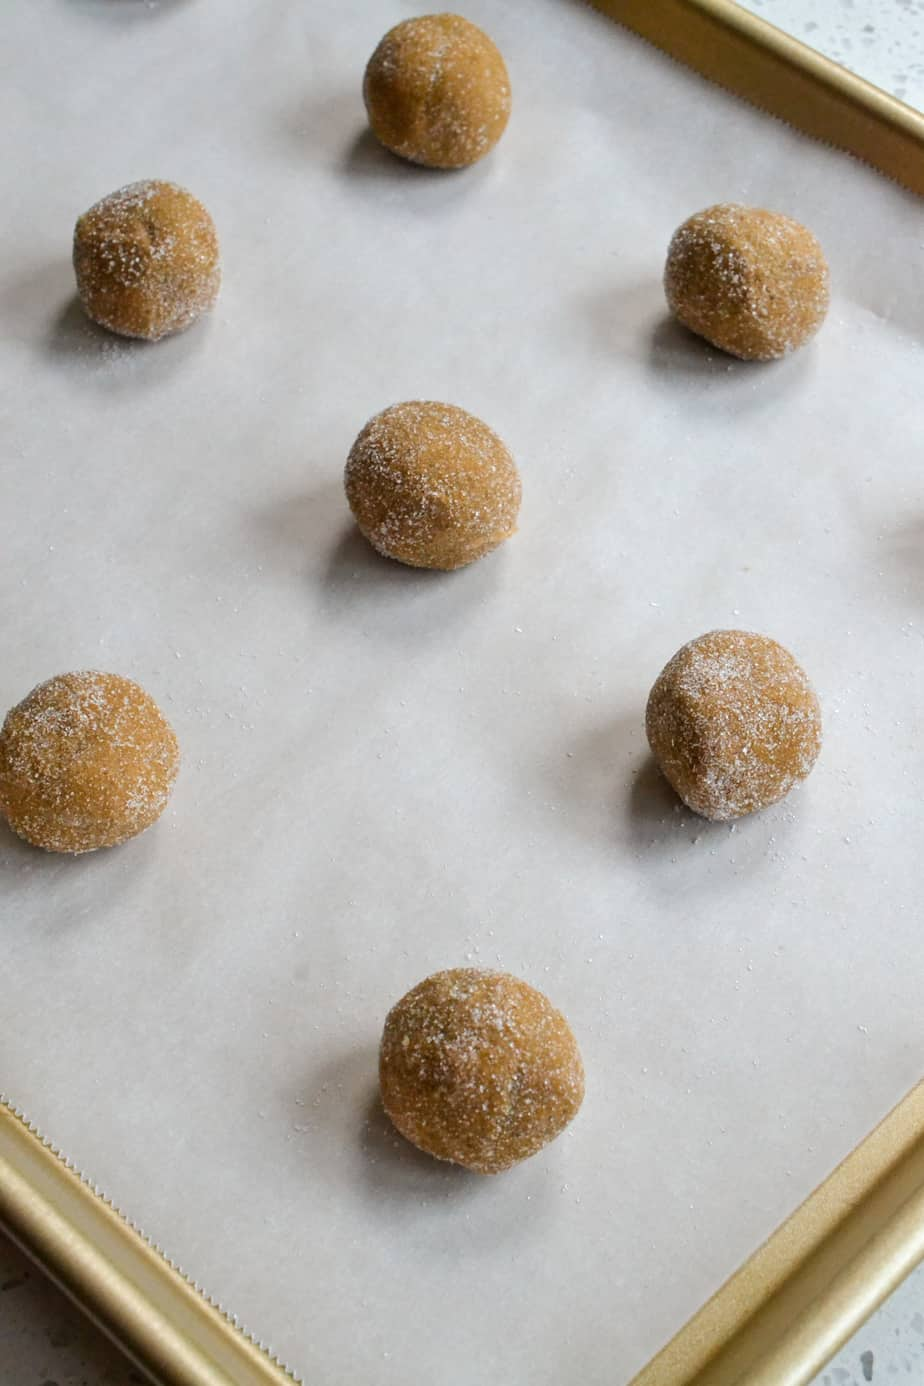 Roll the dough into balls and place on parchment covered baking sheets.